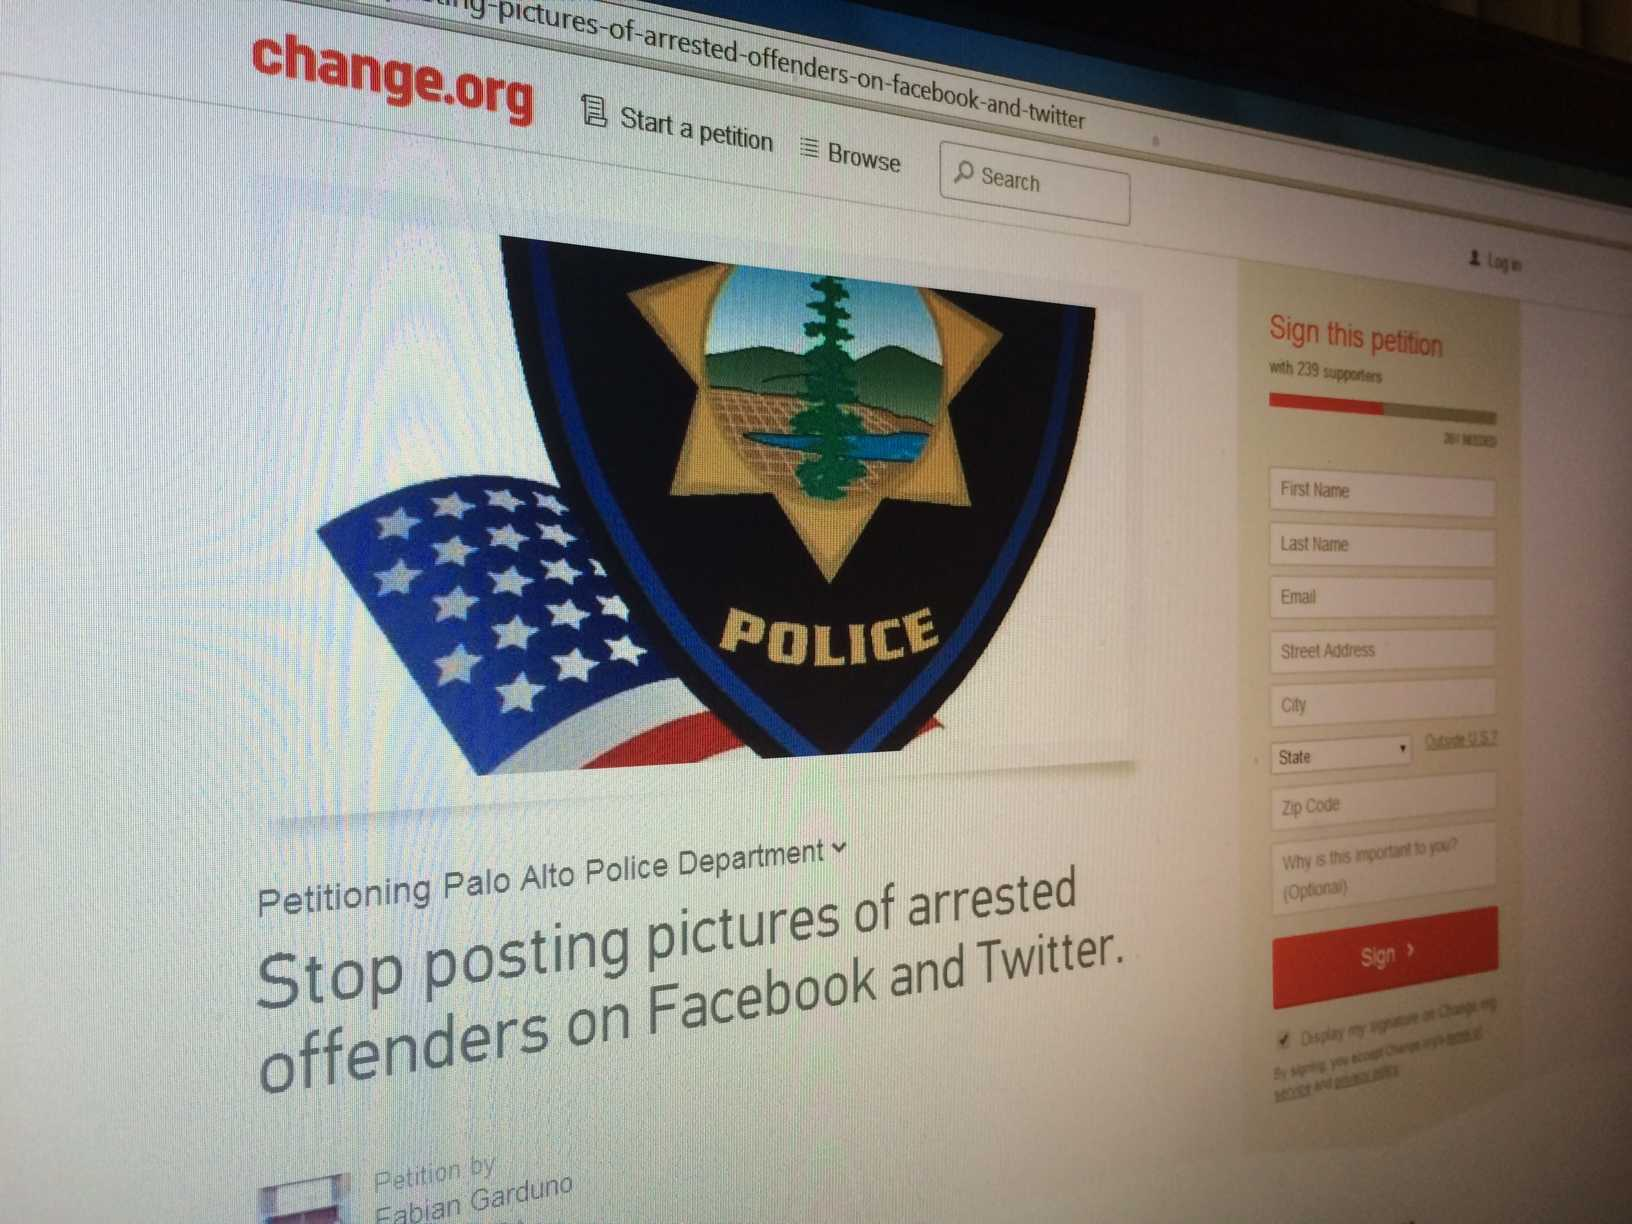 The petition created by a Paly student on change.org requests the PAPD stop posting pictures of arrested offenders on Facebook and Twitter. Photo by Emma Chiu.